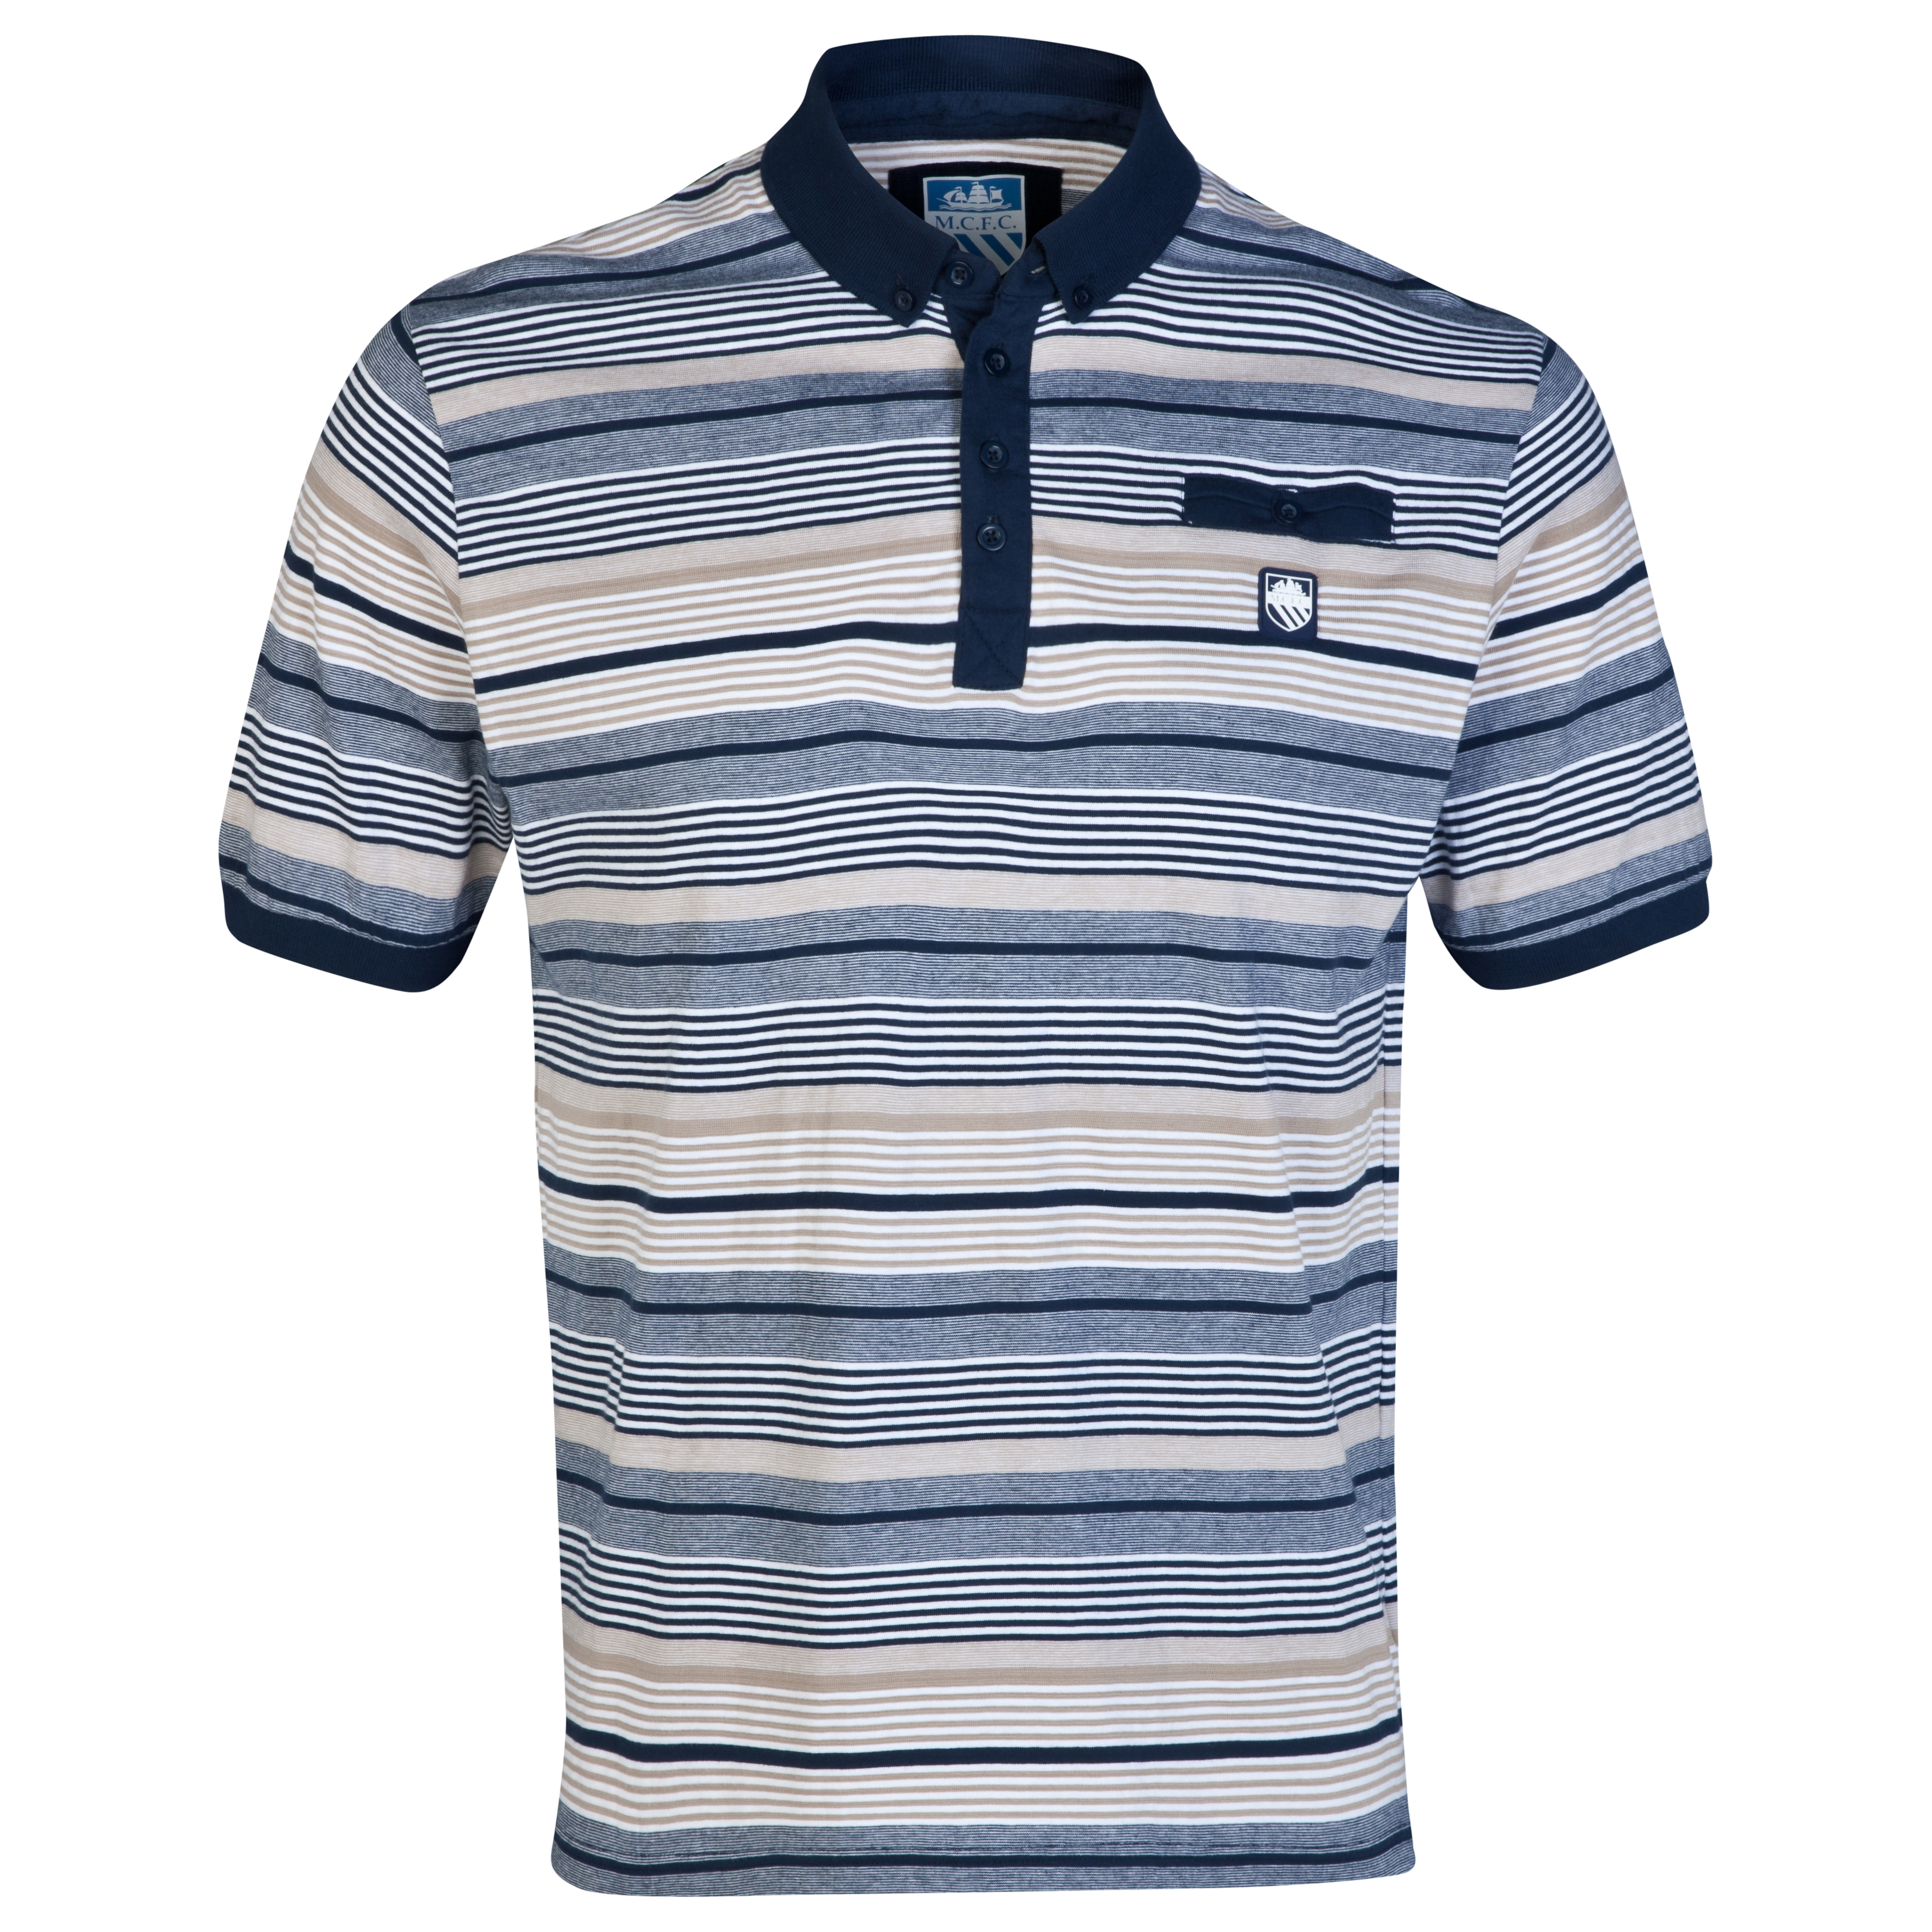 Manchester City Linea Polo Shirt-Mens Multi